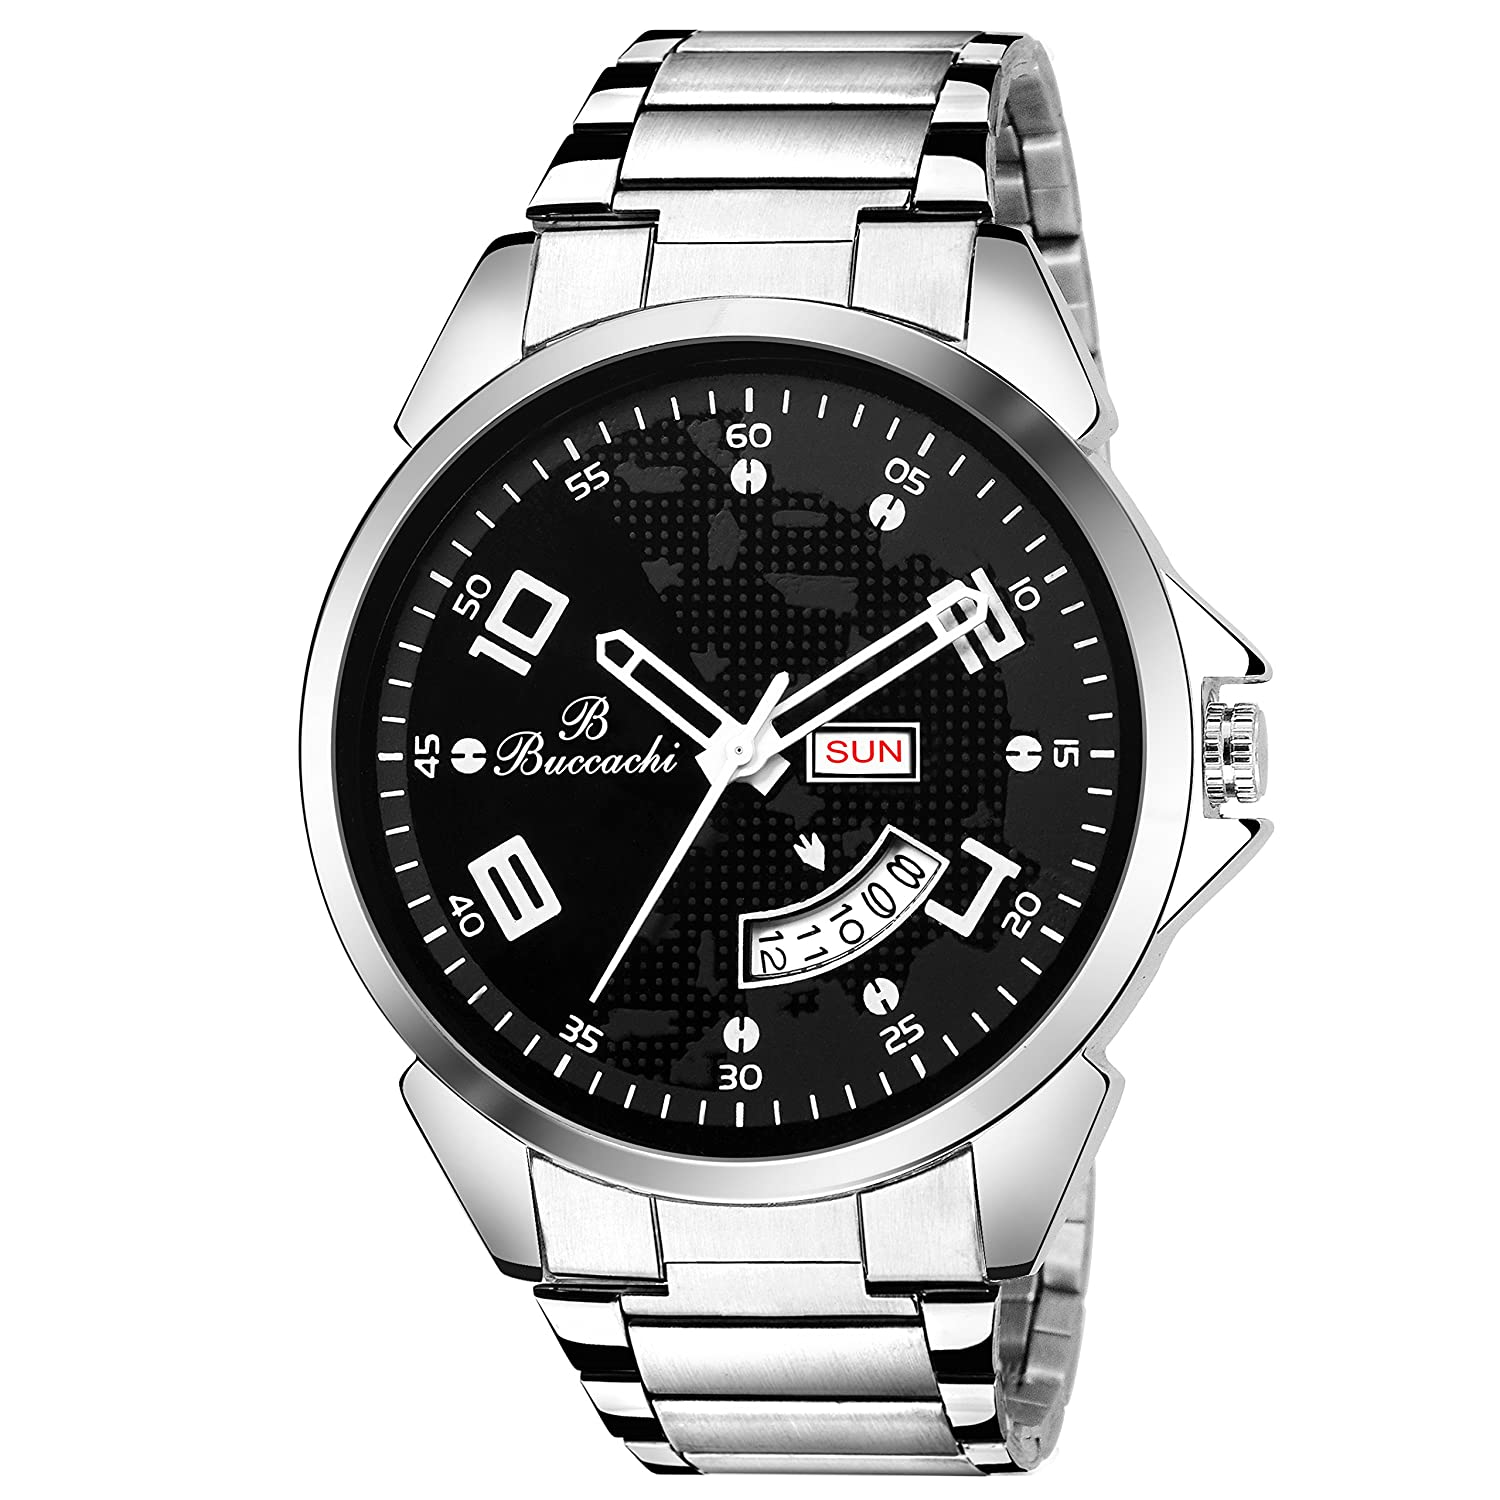 Buccachi Analog Black Dial Day & Date Silver Colour Strap